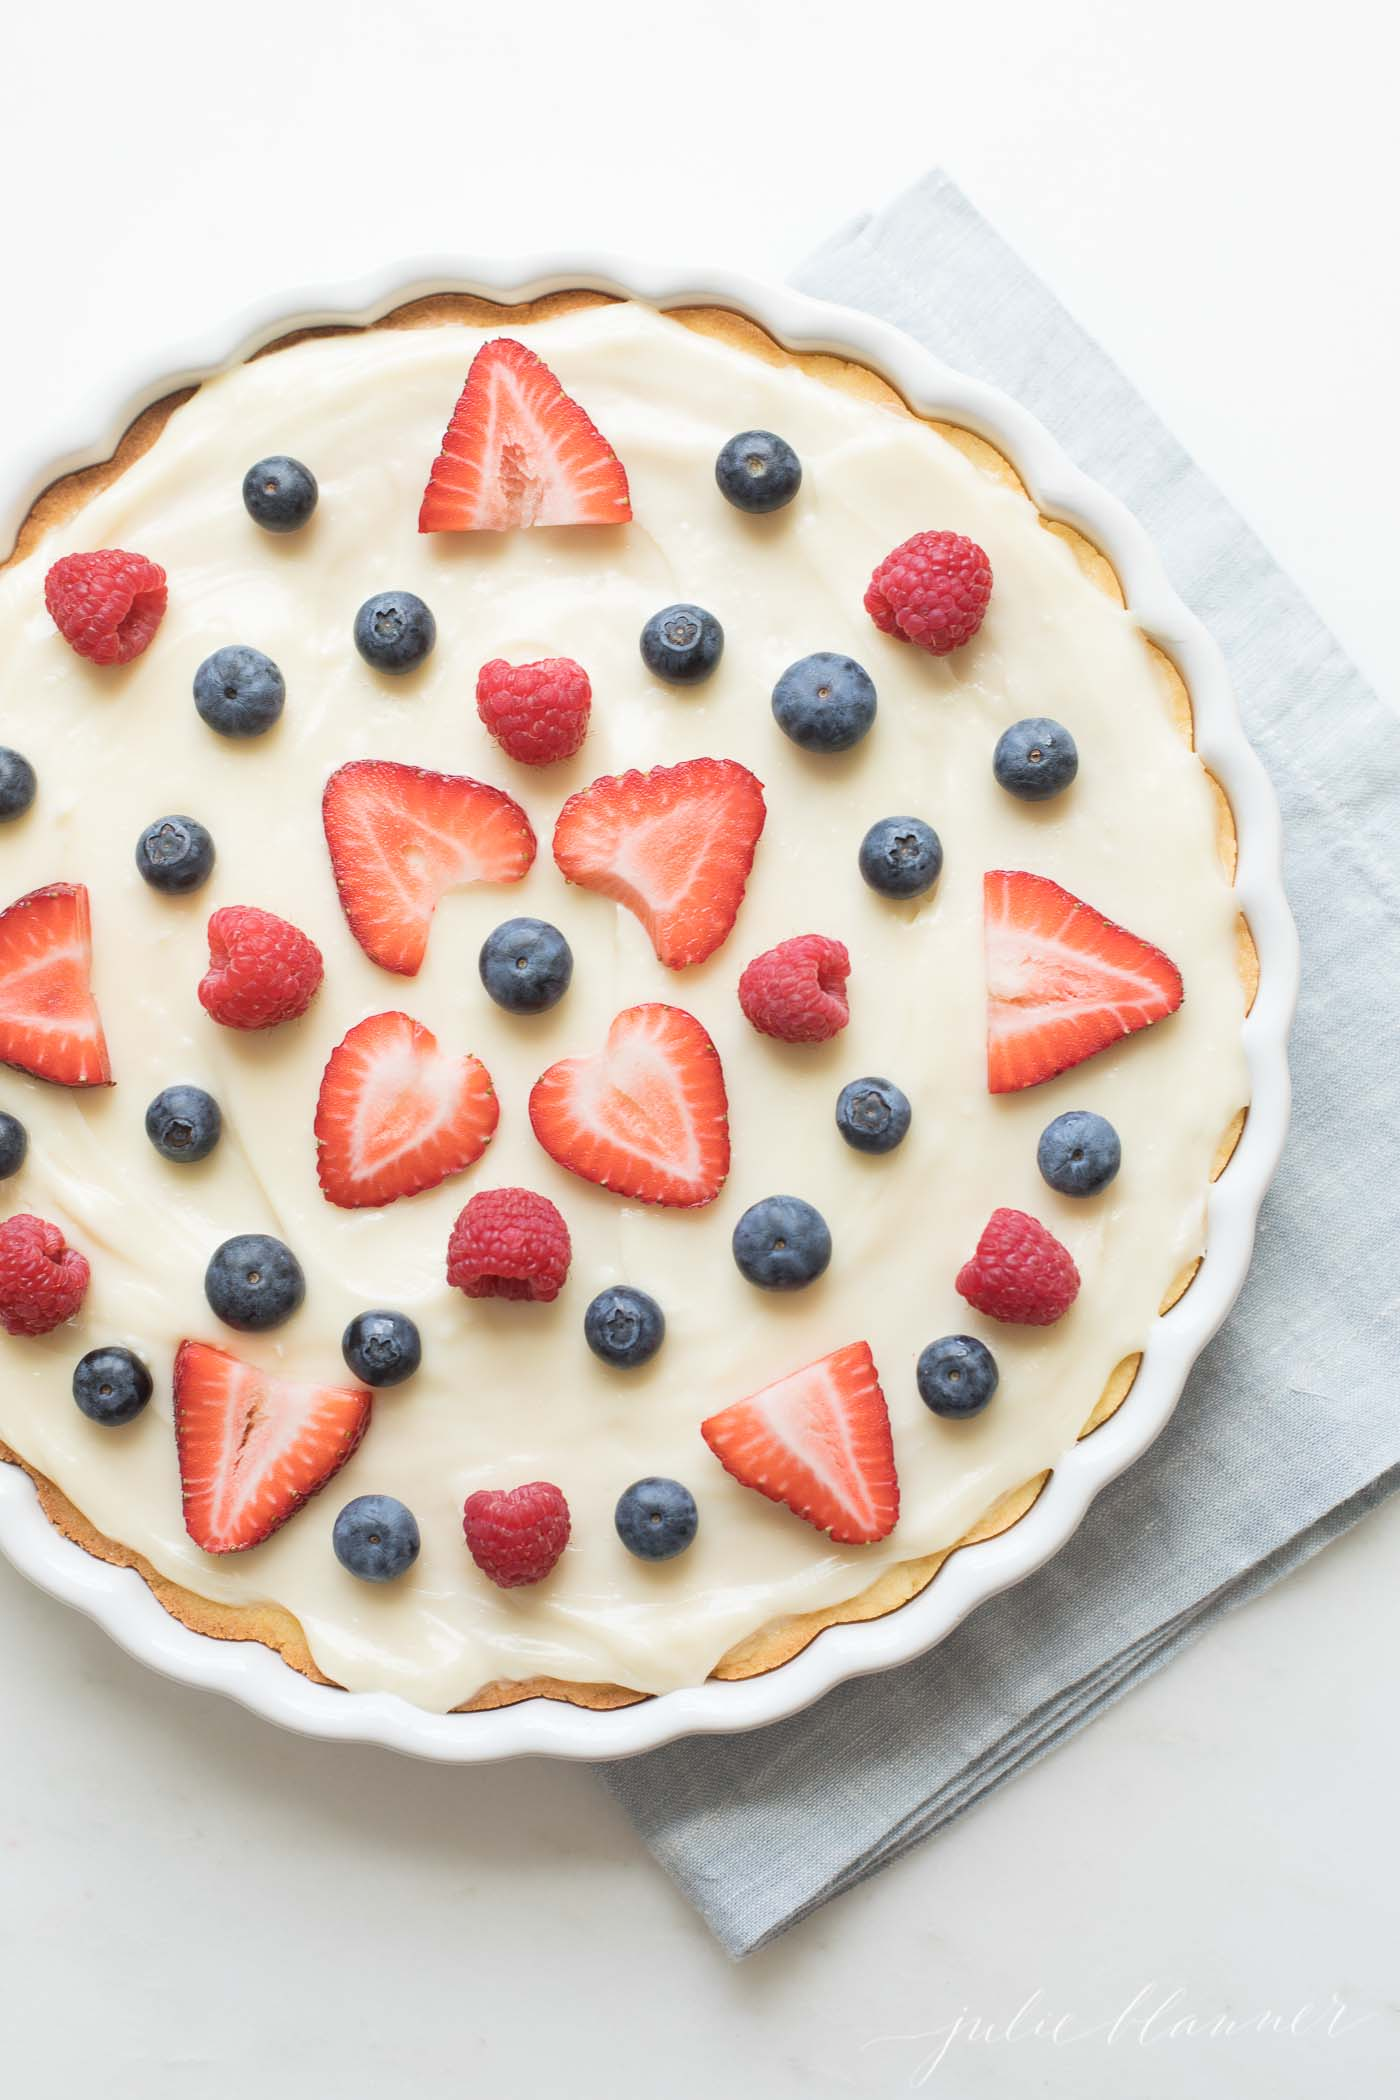 pretty fruit pizza with strawberries raspberries and blueberries